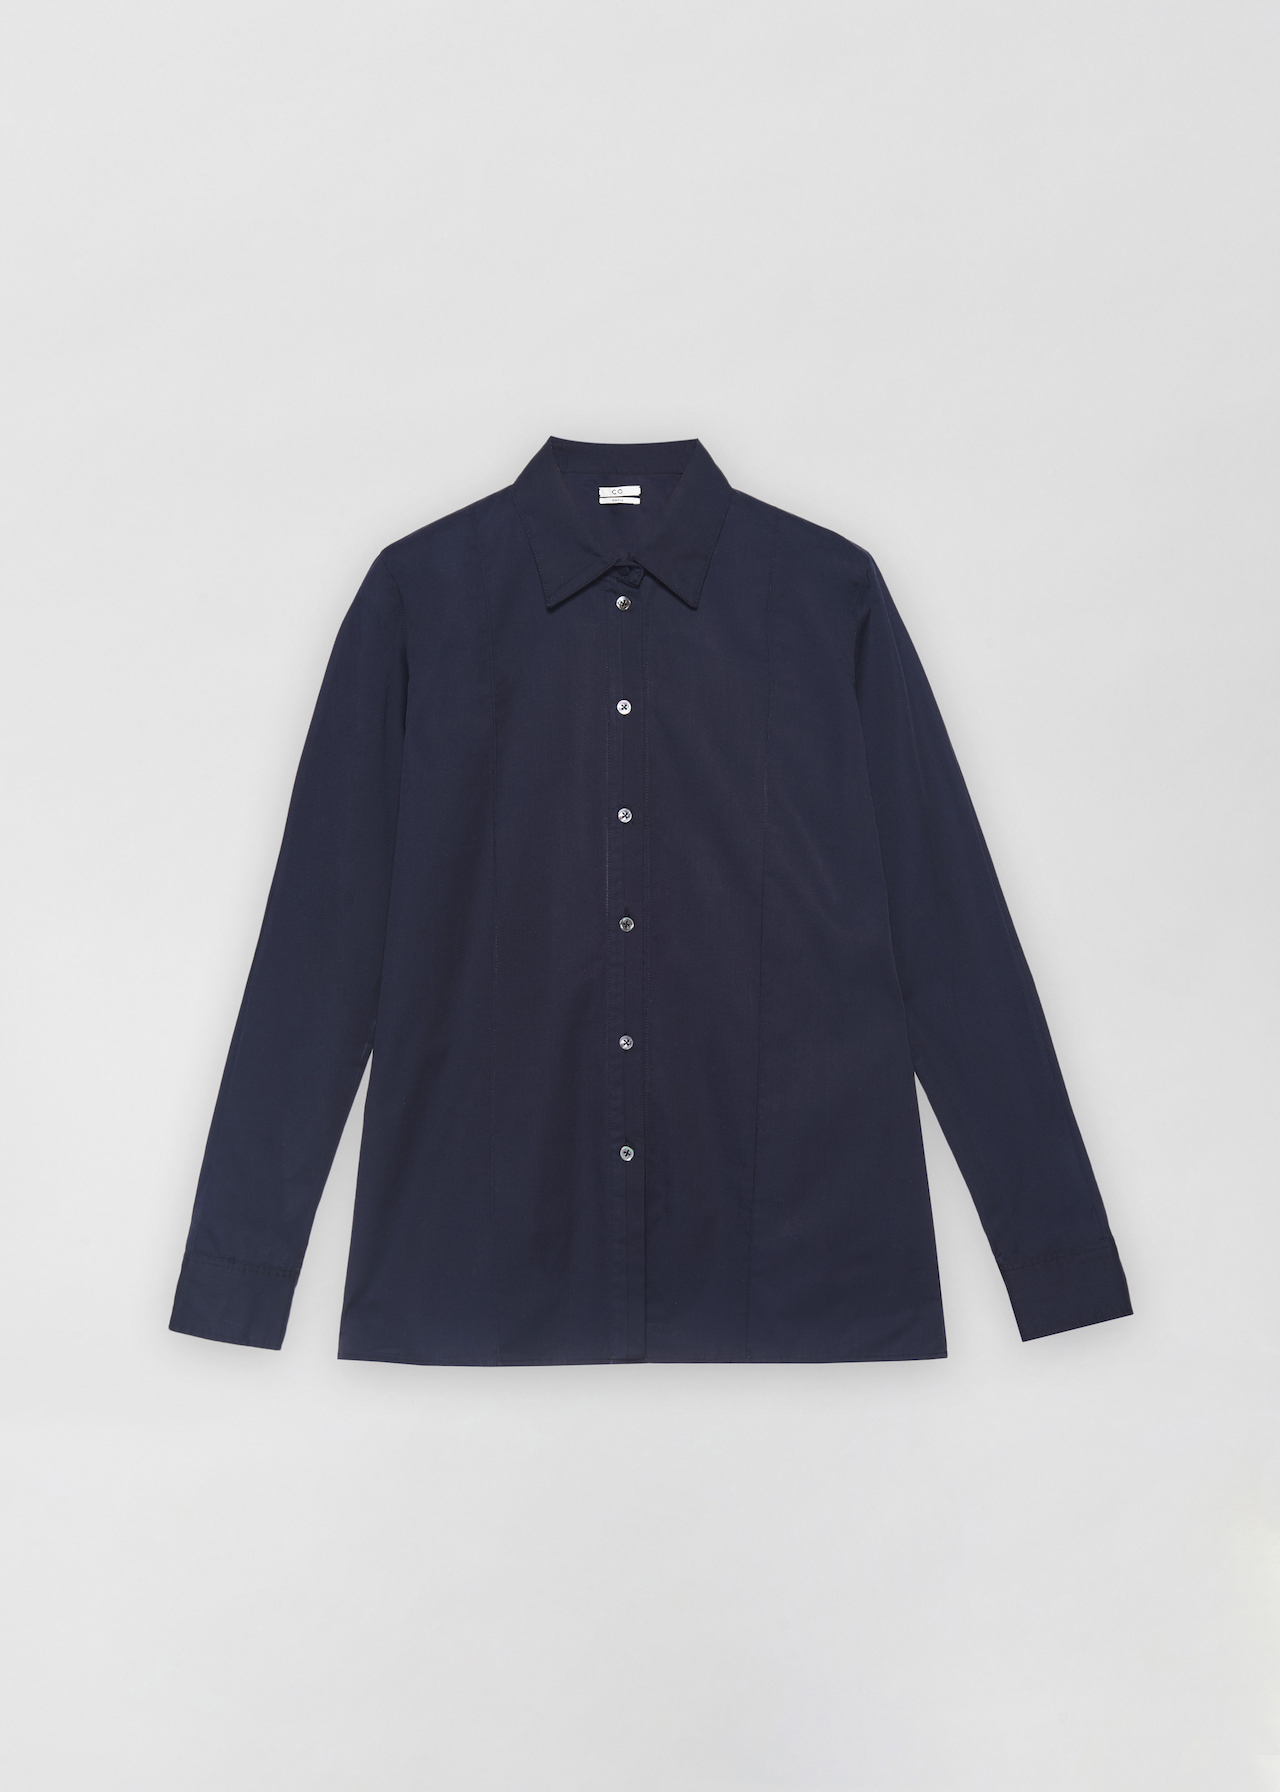 Tucked Placket Button Down Shirt - Black in Navy by Co Collections